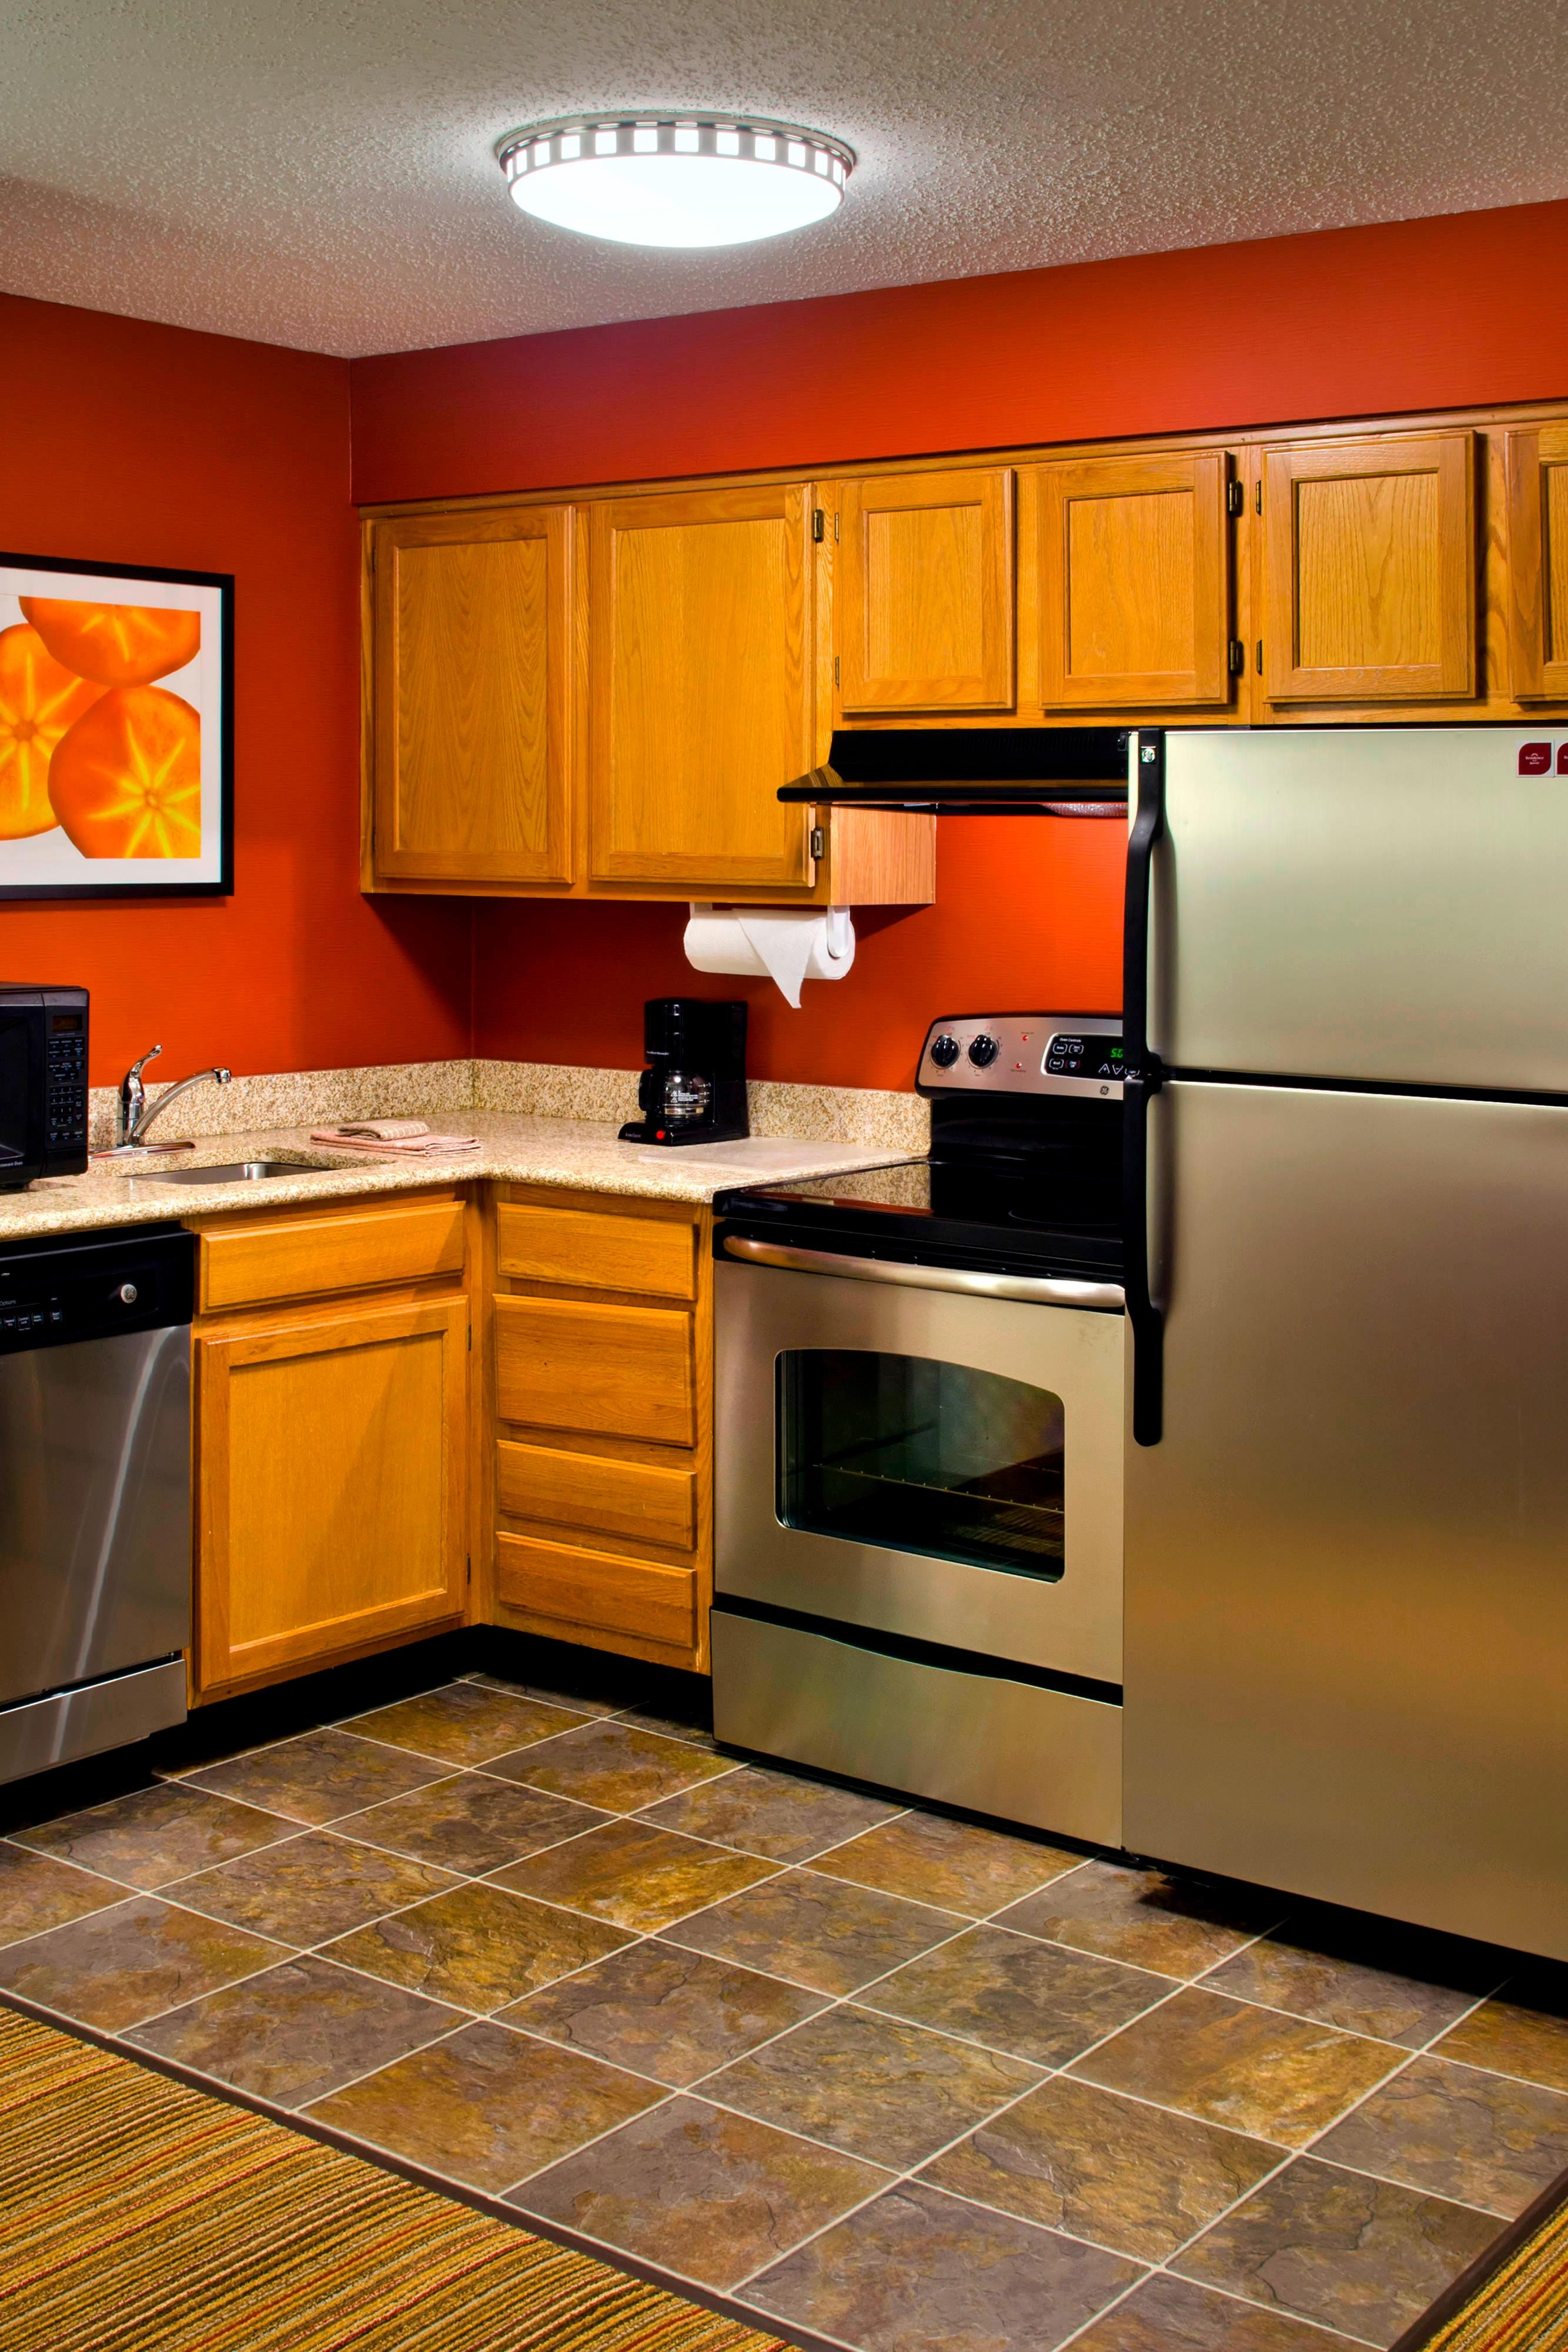 Hotels In Parsippany New Jersey Residence Inn Parsippany